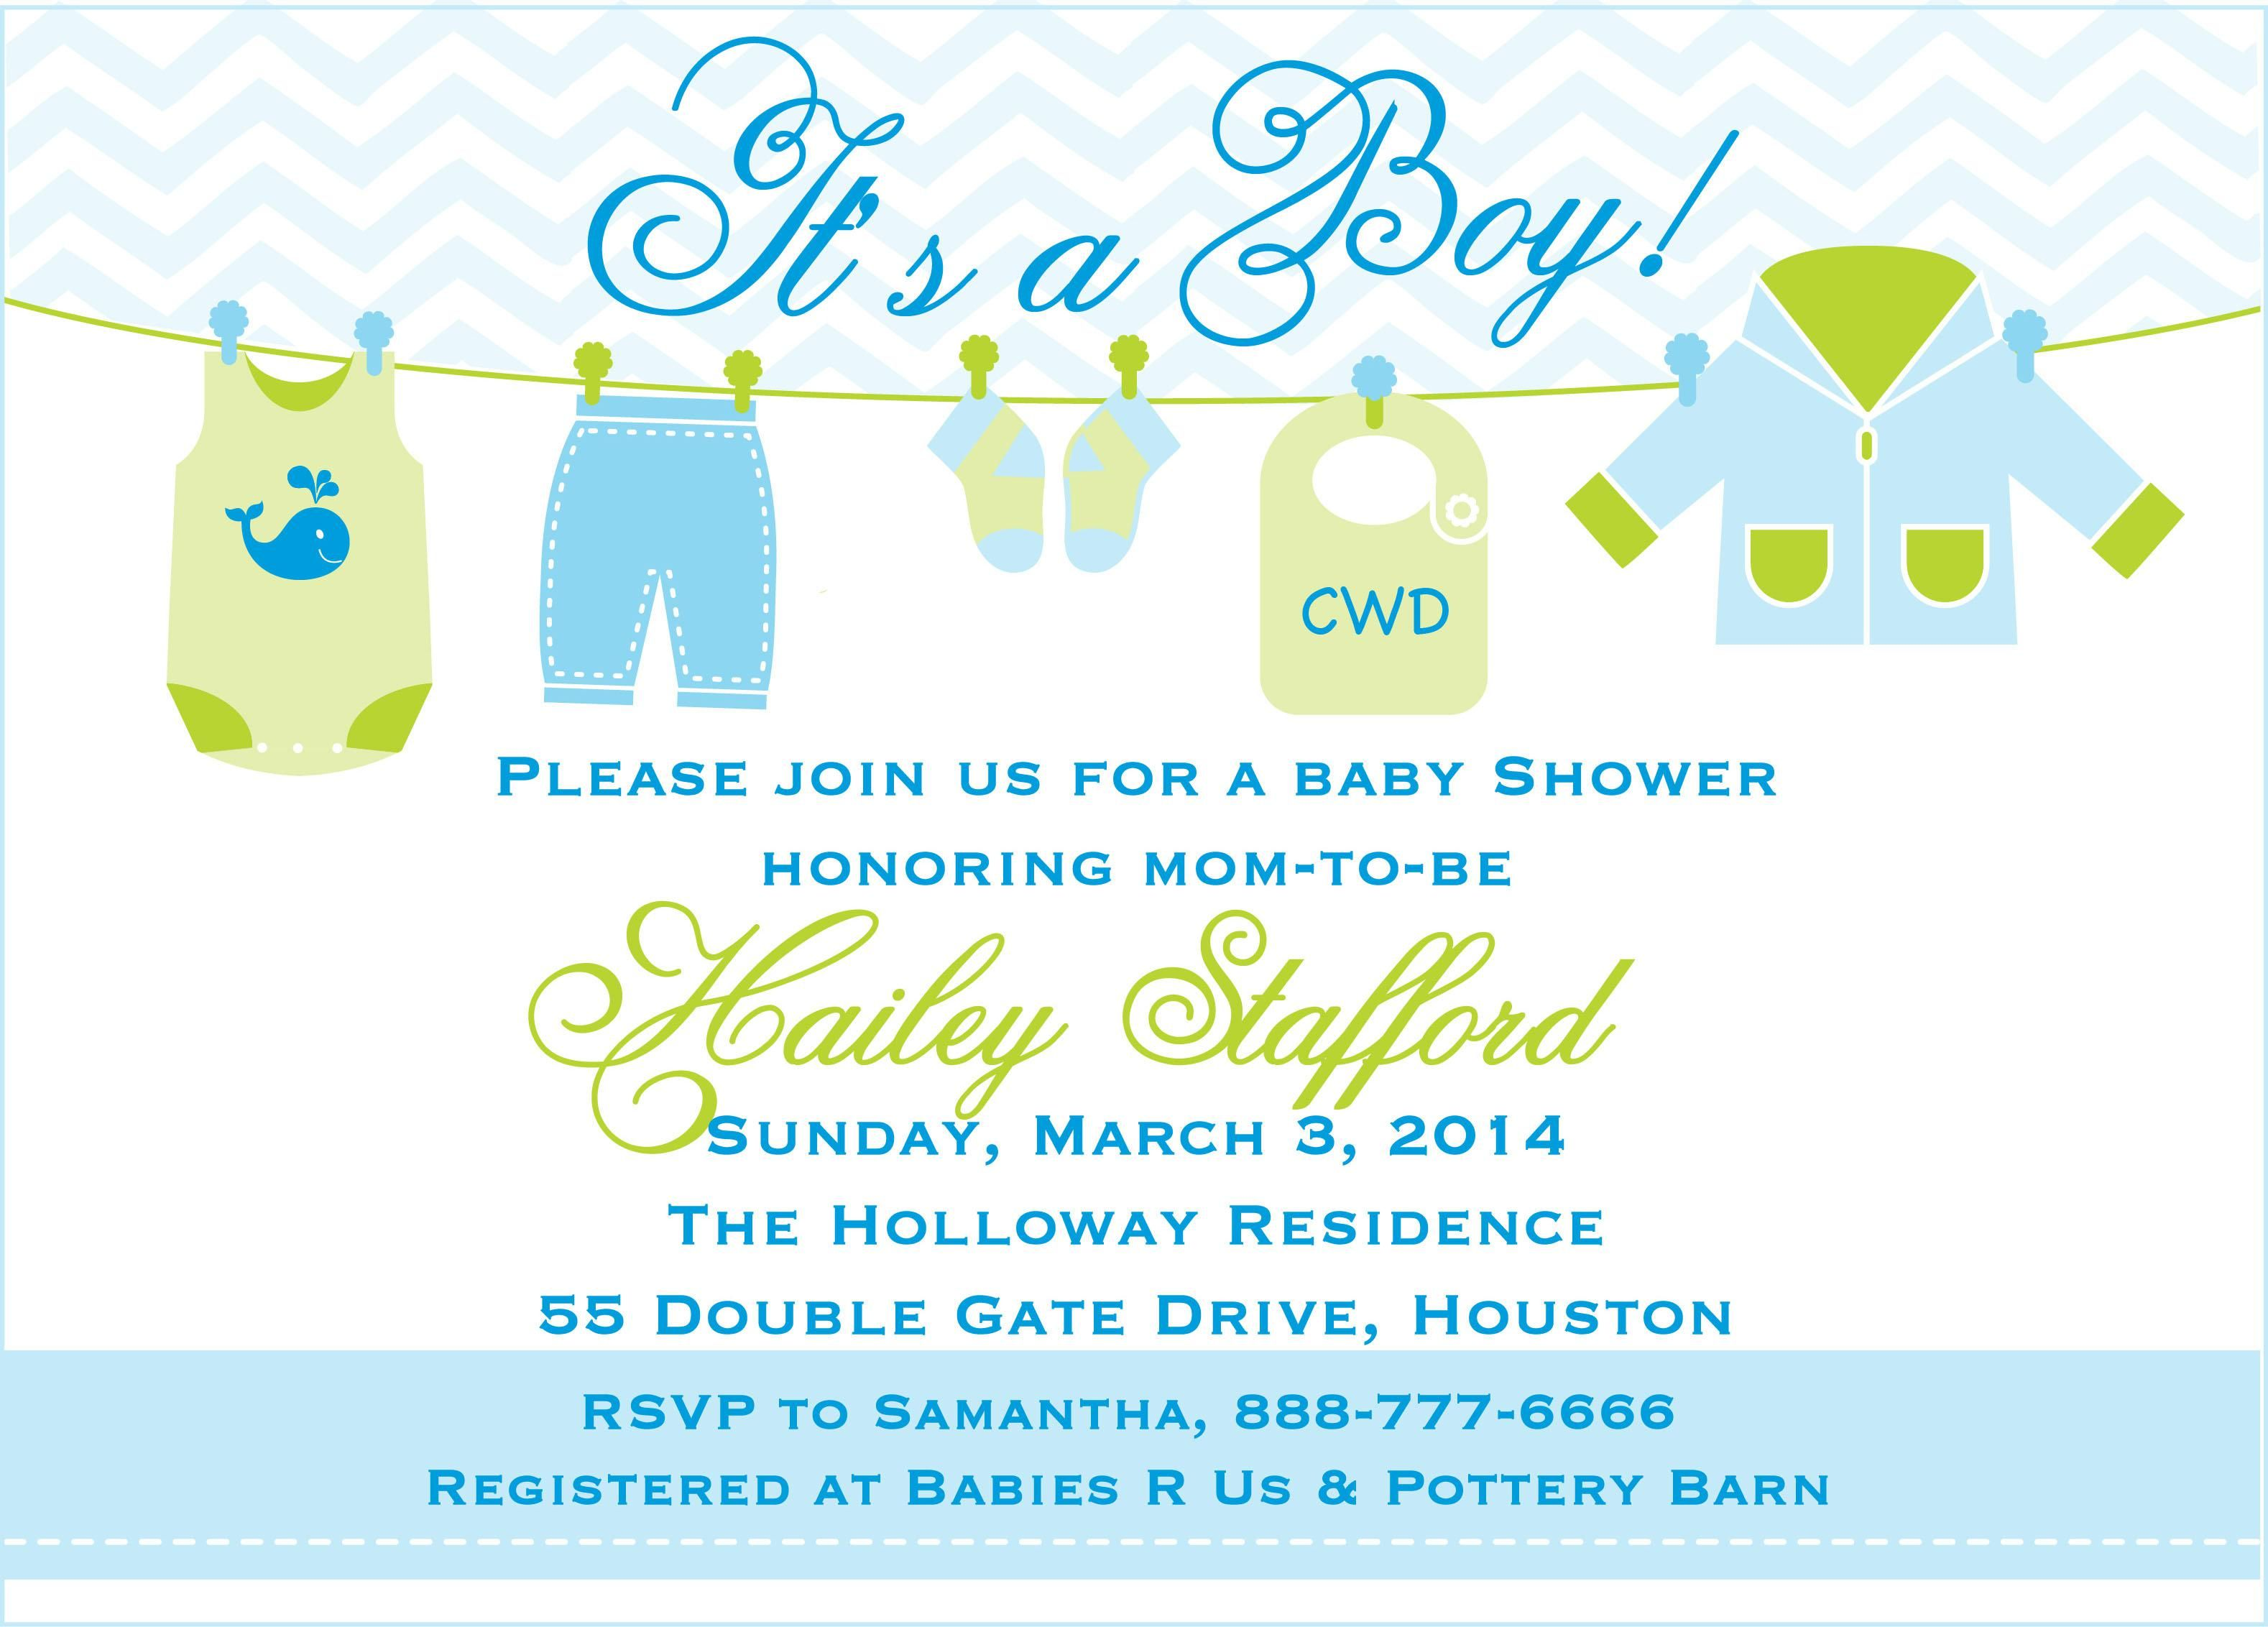 Baby Boy Shower Invitations Templates Free | baby shower | Pinterest ...